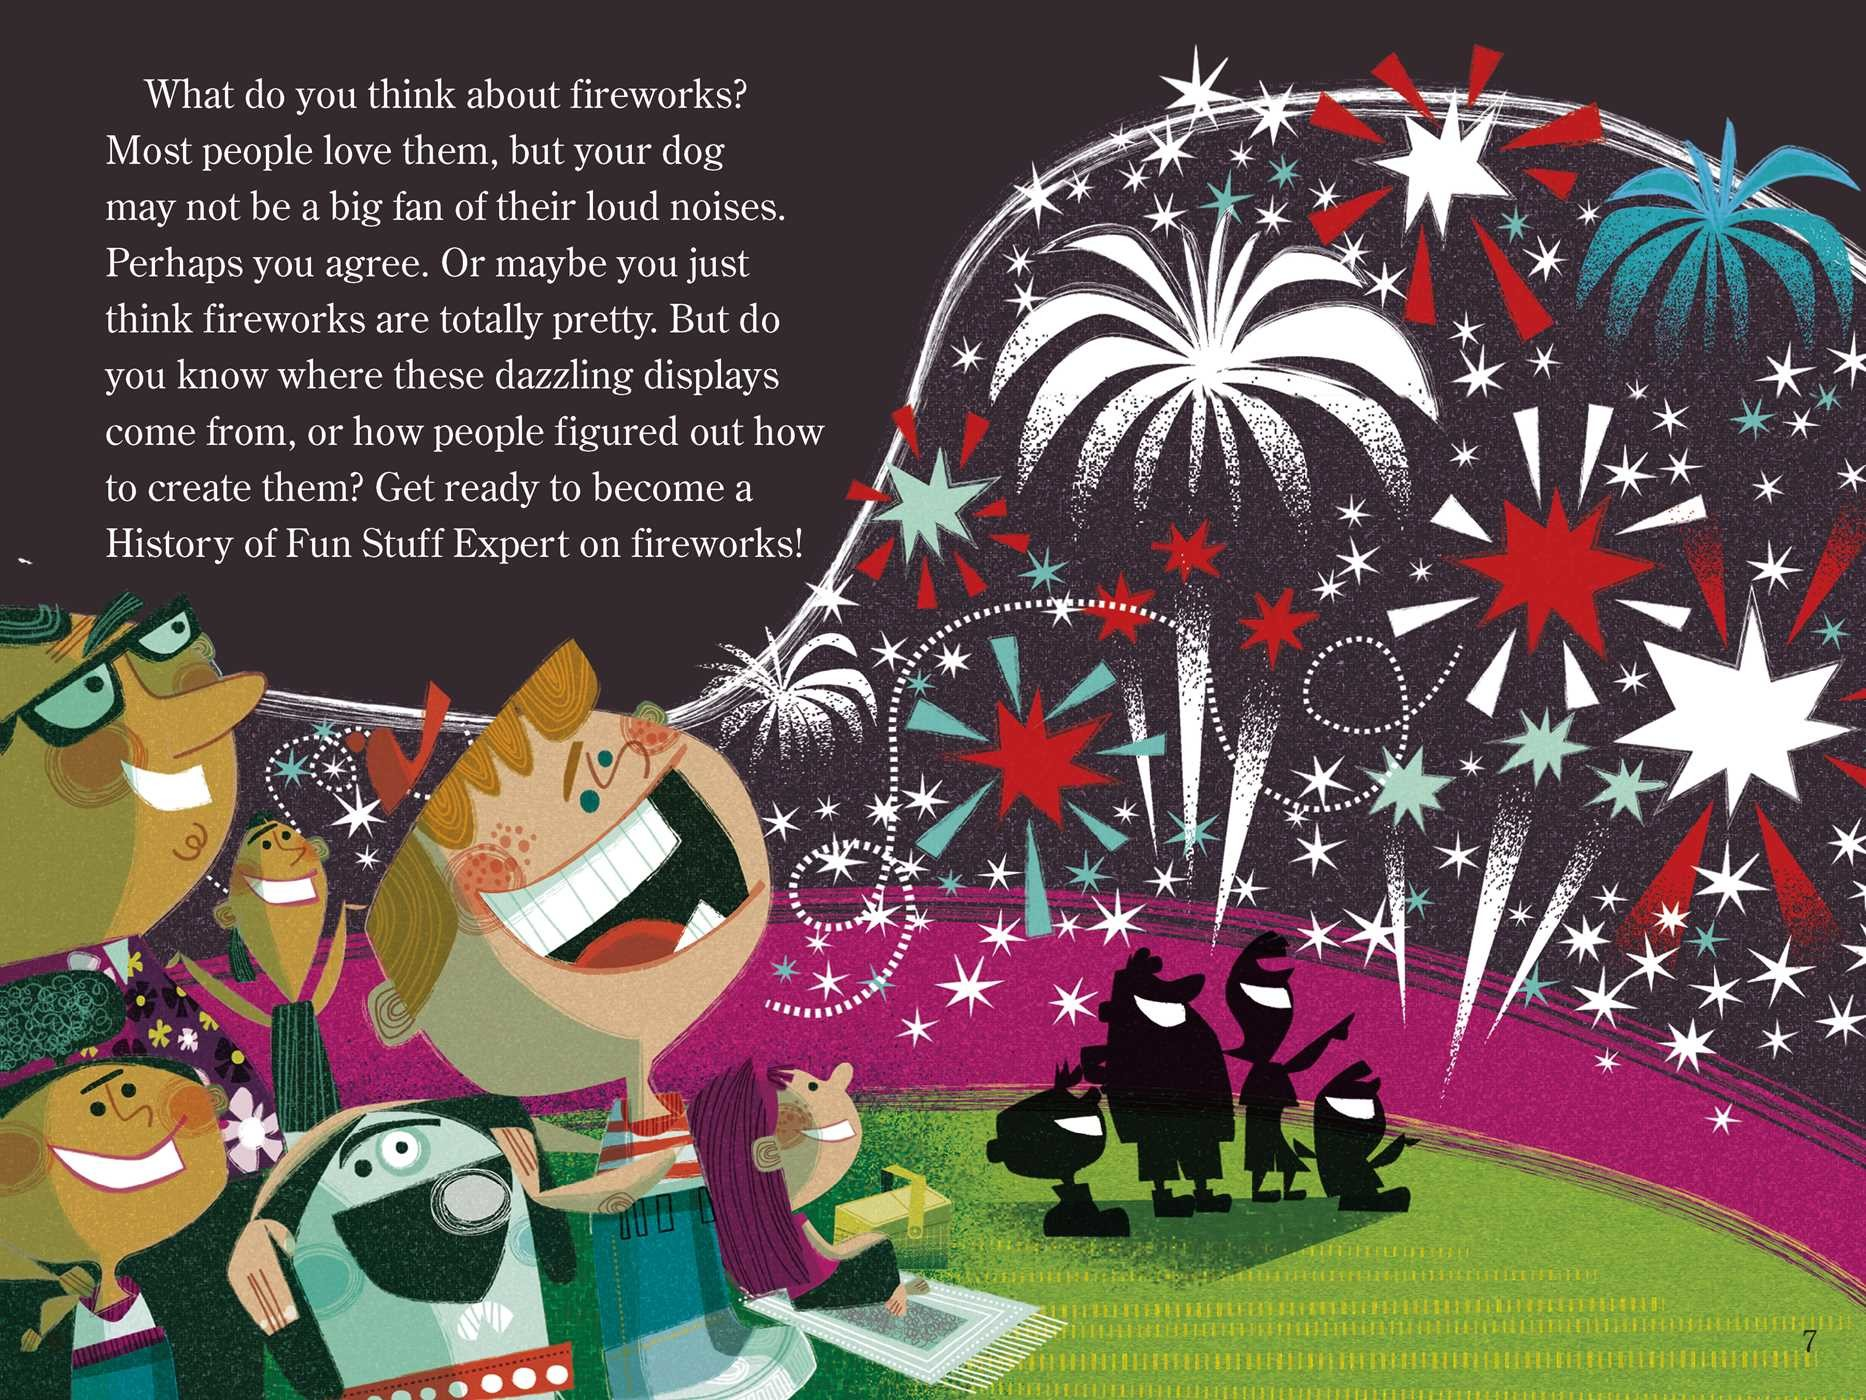 The explosive story of fireworks 9781481438476.in01